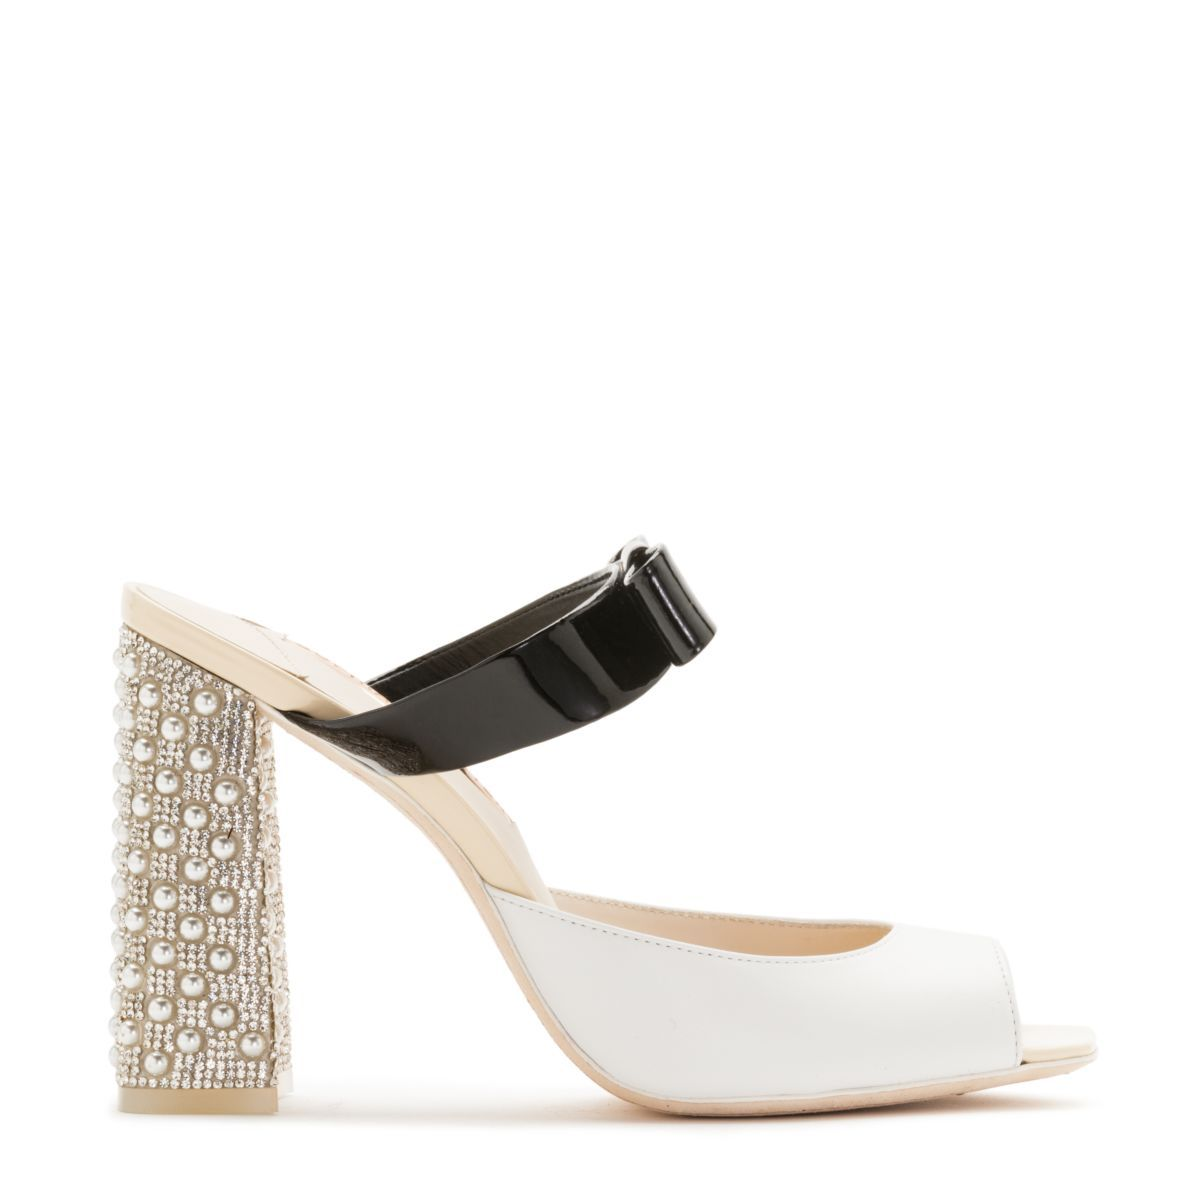 e762f7ee3e95 ANDIE MULE 100MM - Elegant white leather mule with a black patent bow strap  and finished with a pearl and crystal embellished chunky heel.